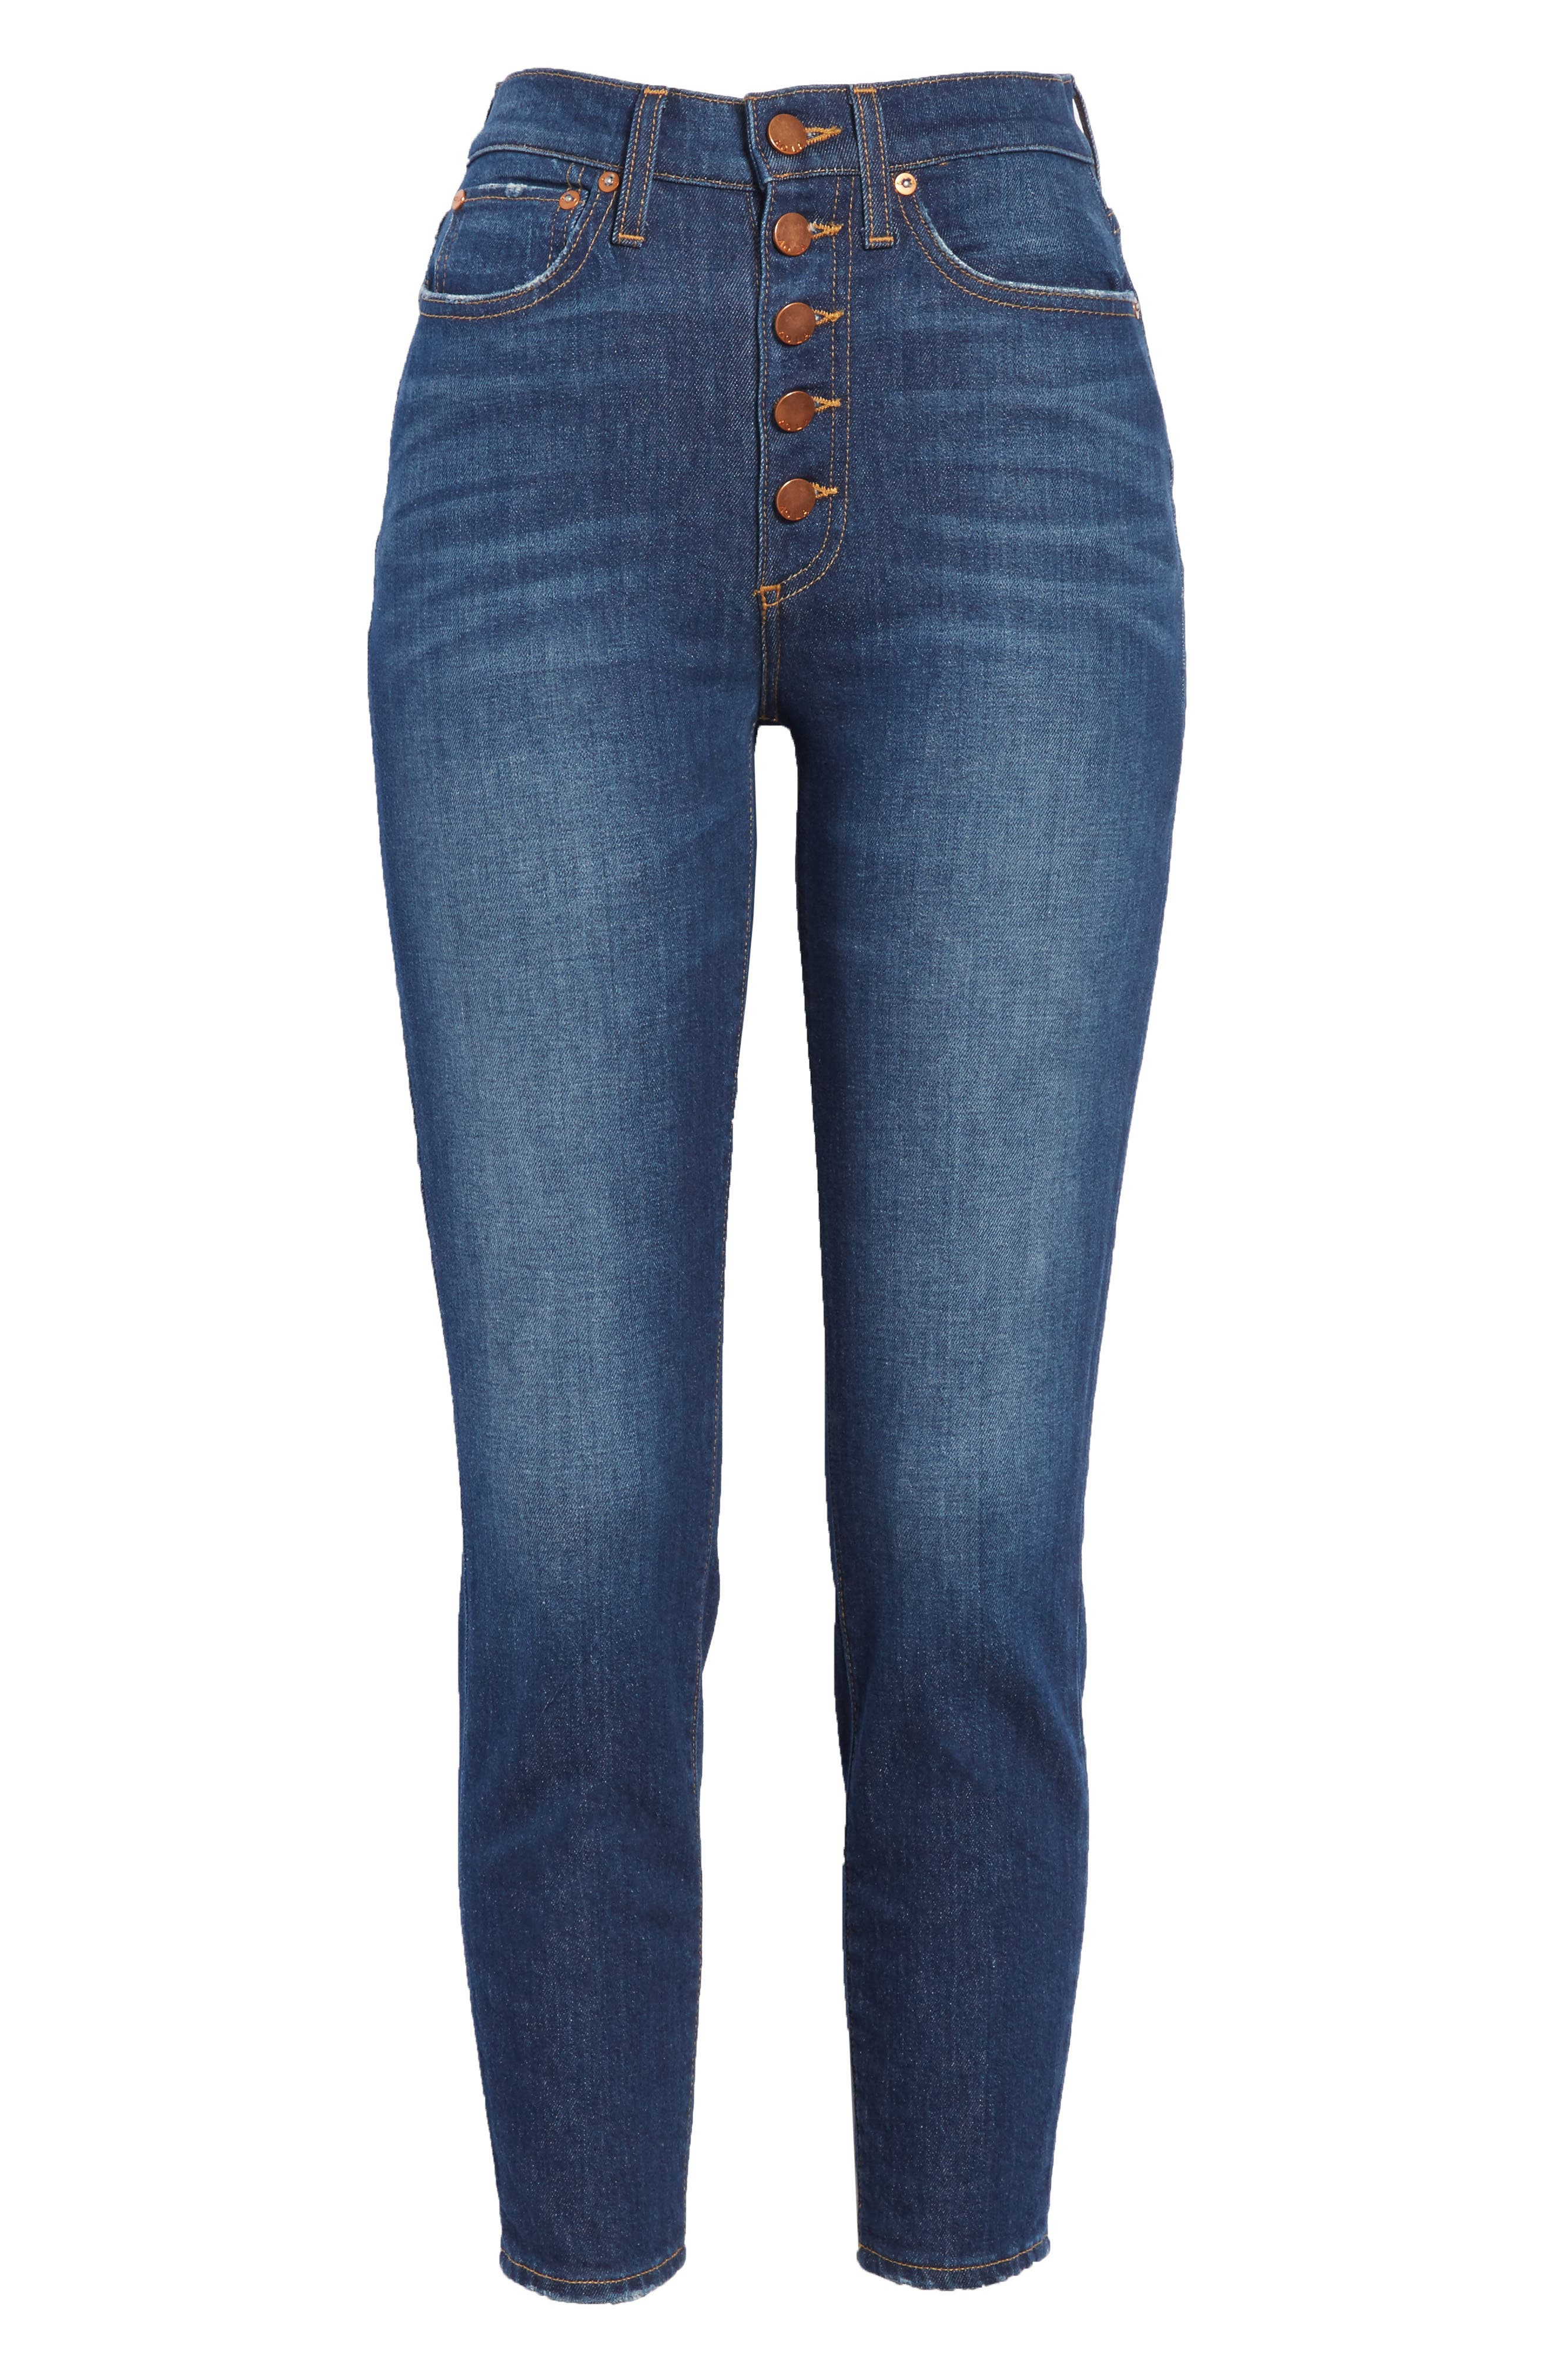 AO.LA Good High Waist Exposed Button Skinny Jeans,                             Alternate thumbnail 6, color,                             472